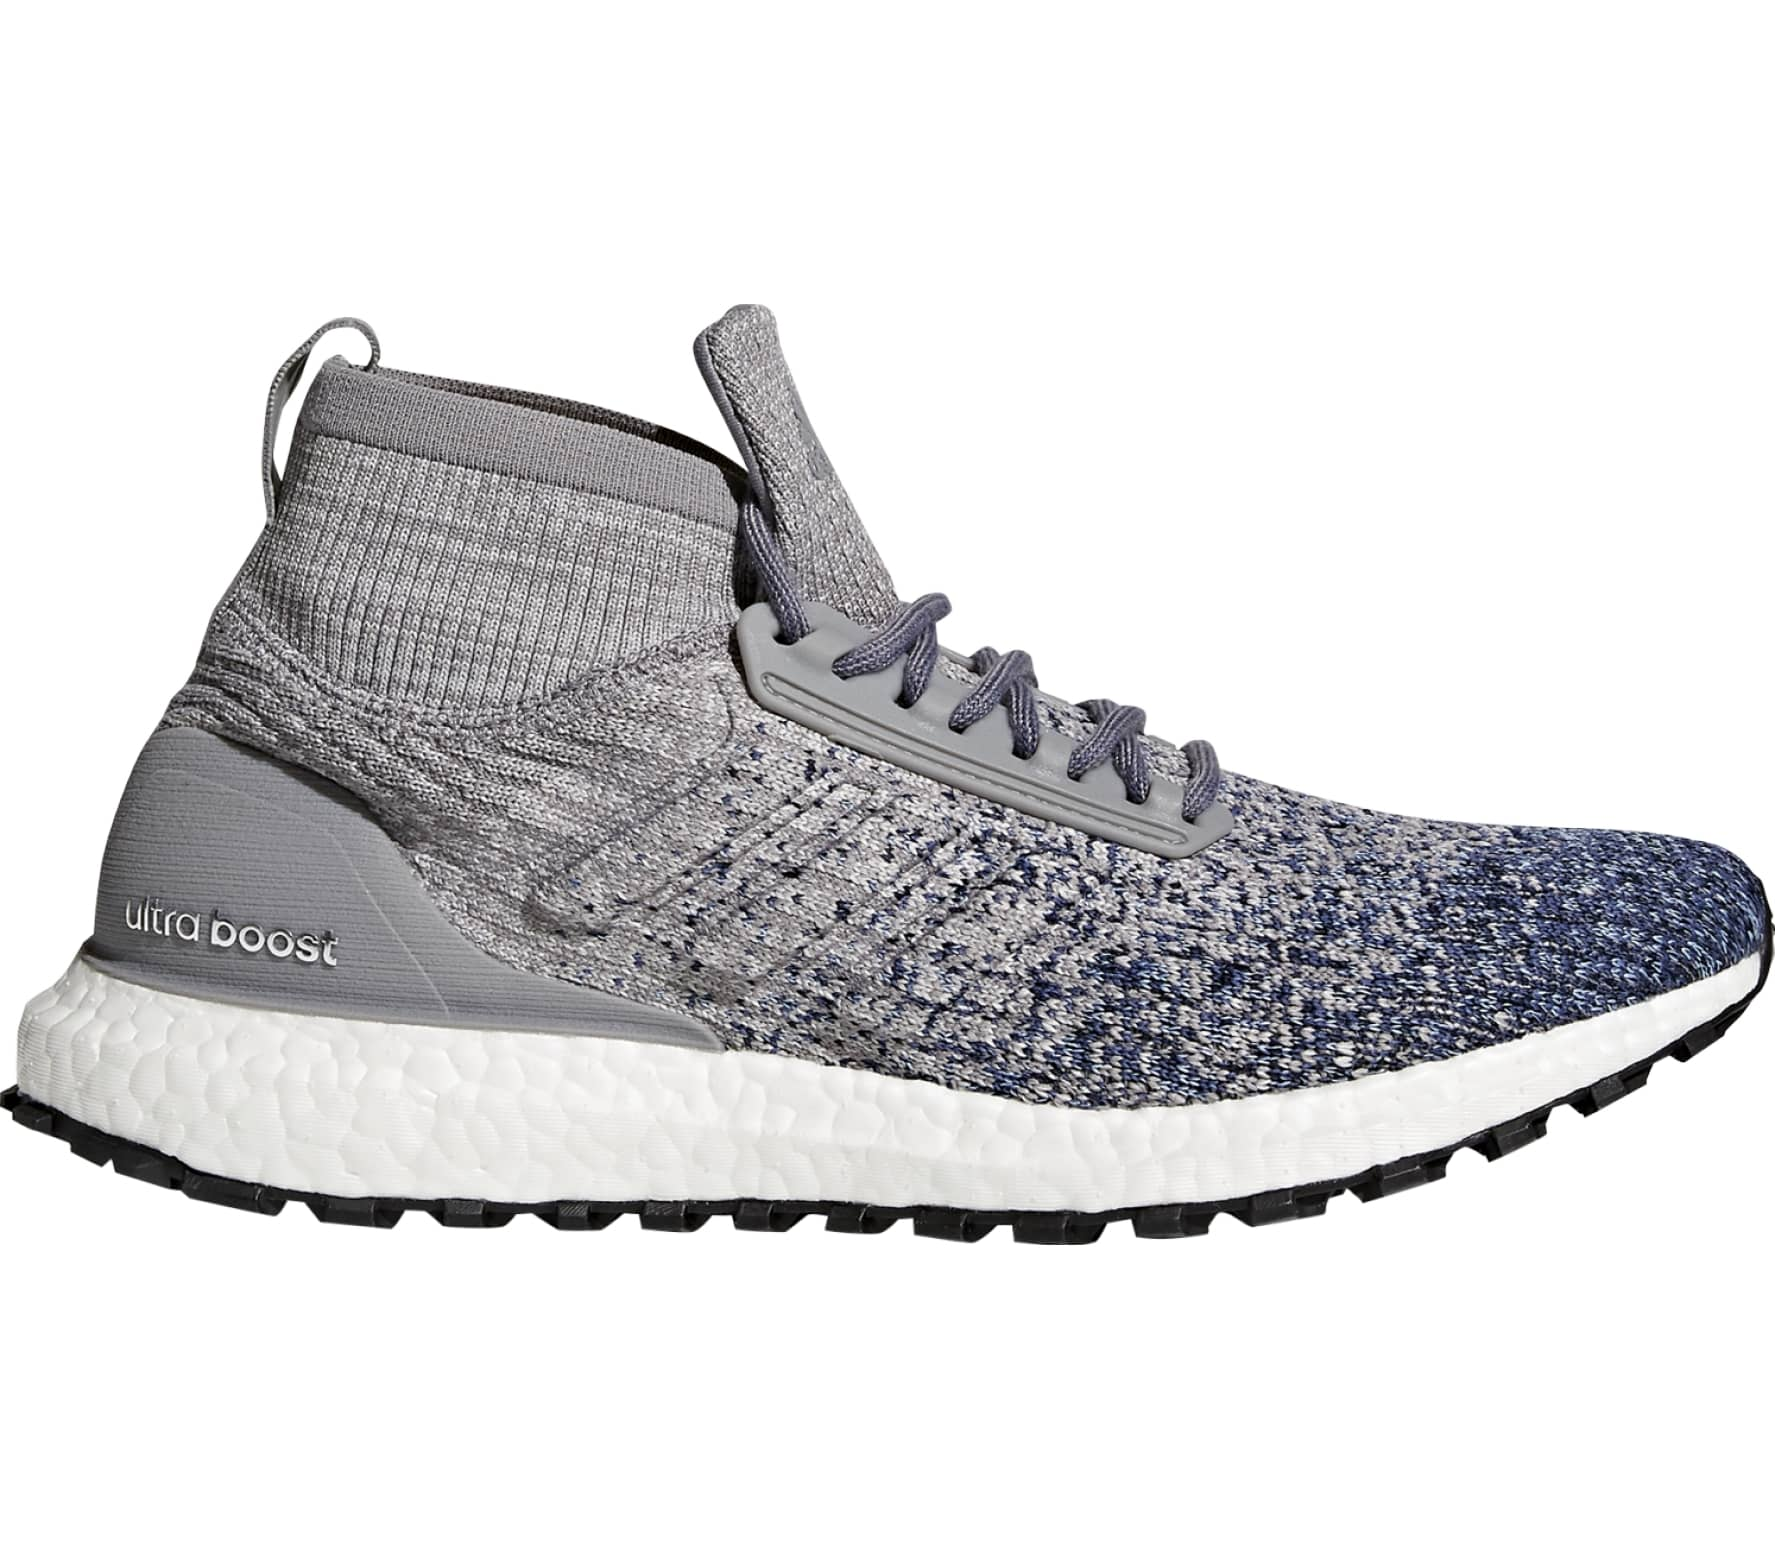 online retailer a59af d12a2 Adidas - UltraBOOST All Terrain men s running shoes (grey)